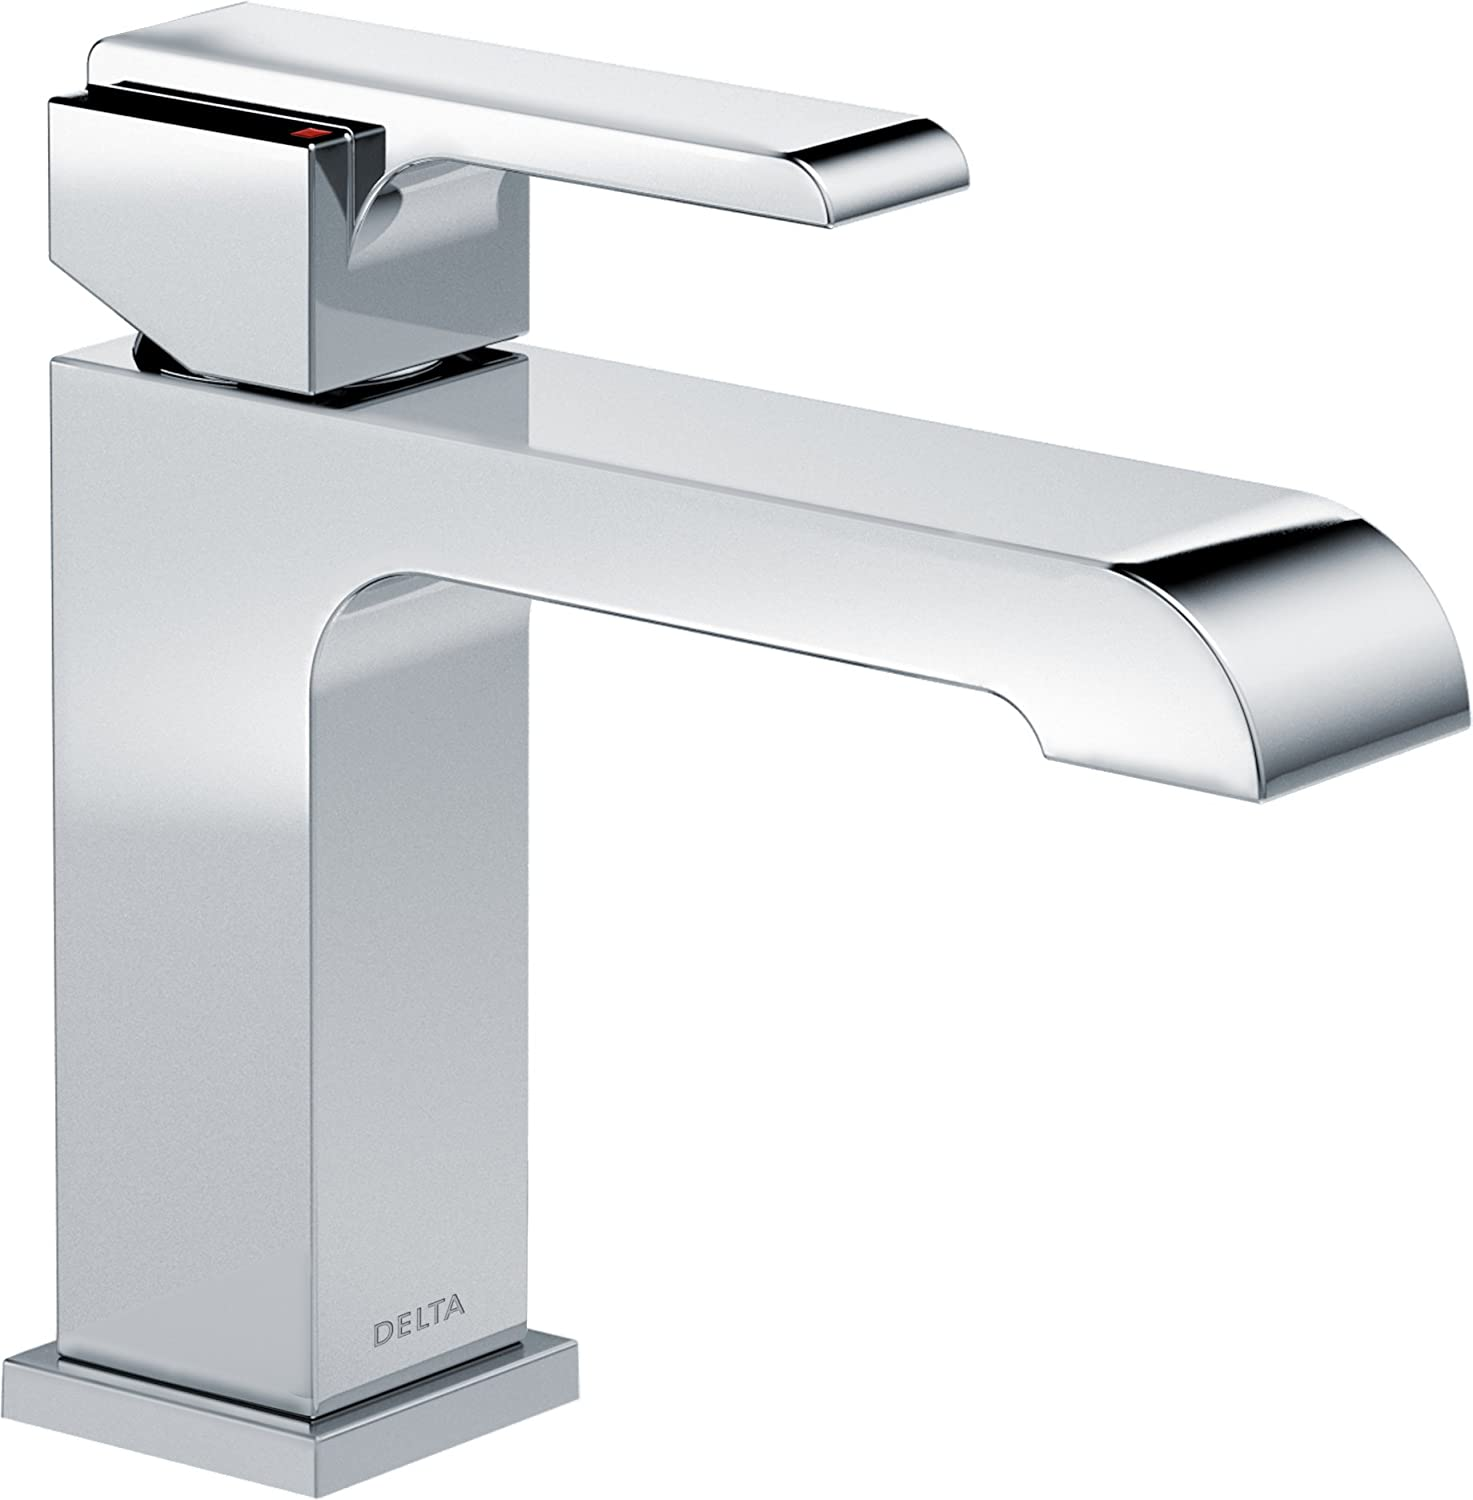 logo u single info com stiprut starting tsssddst worldvector kitchen delta with d s faucets faucet handle pulldown